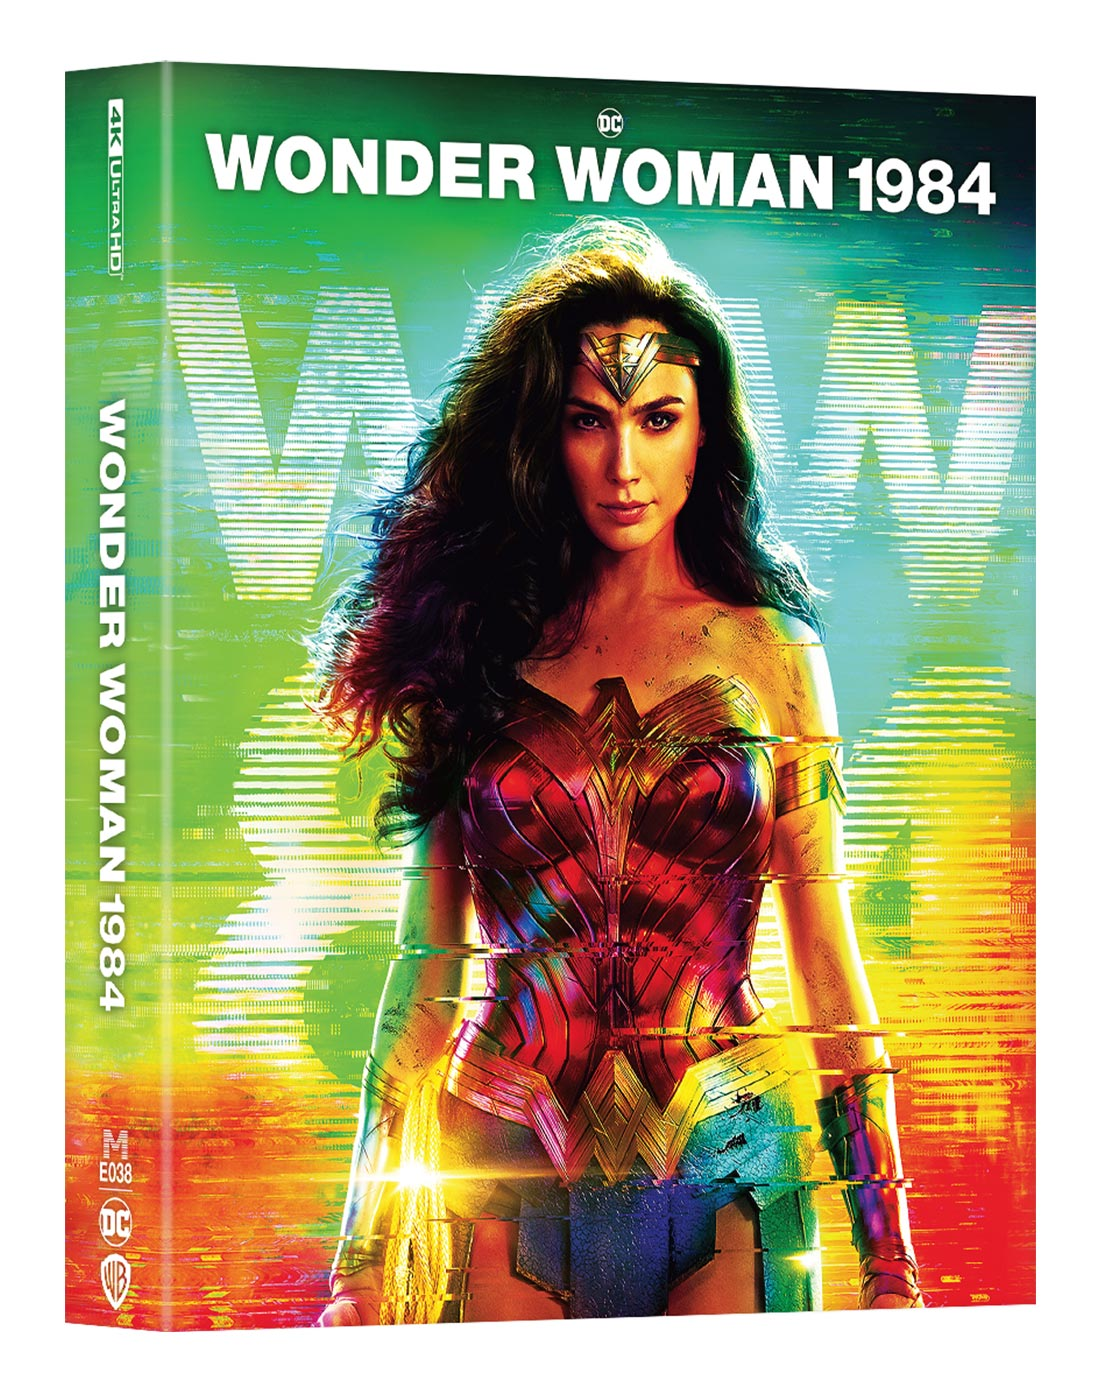 [ME#38] Wonder Woman 1984 Steelbook (Full Slip)